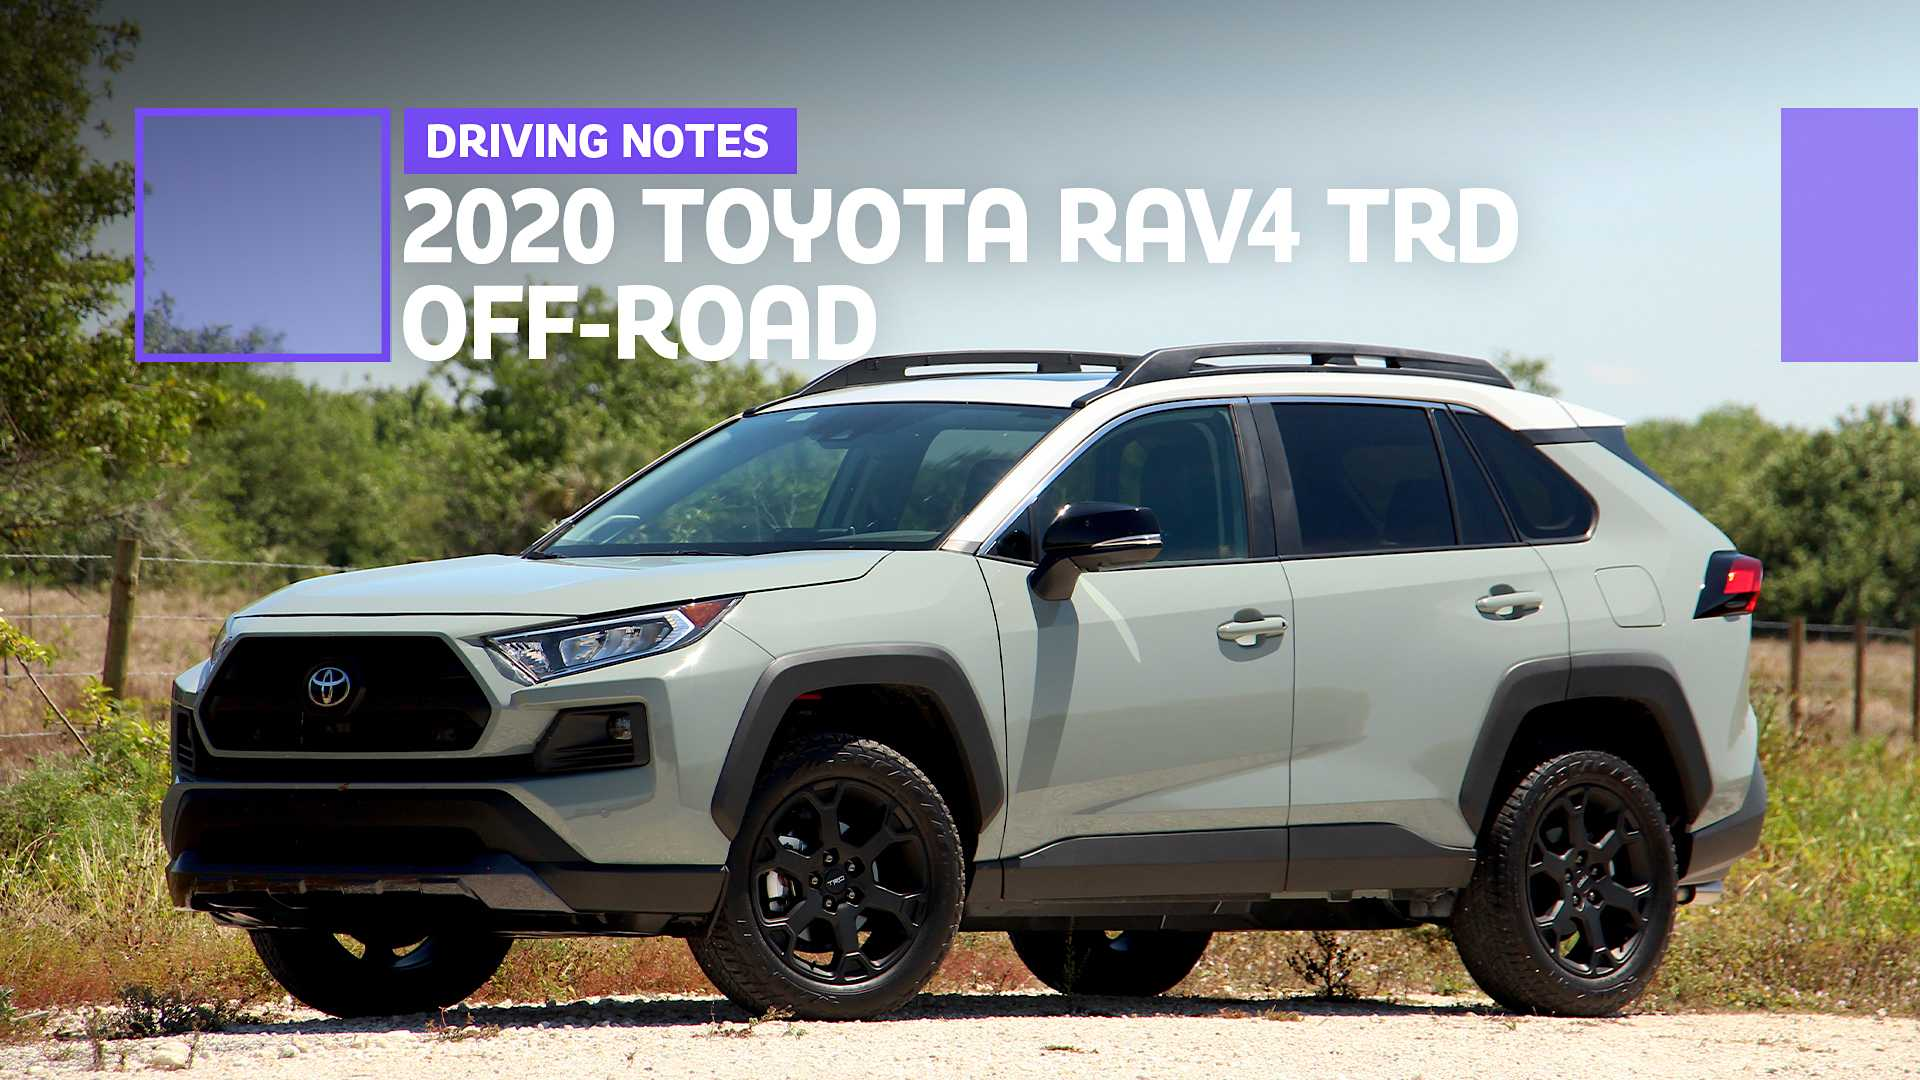 2020 Toyota Rav4 Trd Off Road Driving Notes Pay To Play